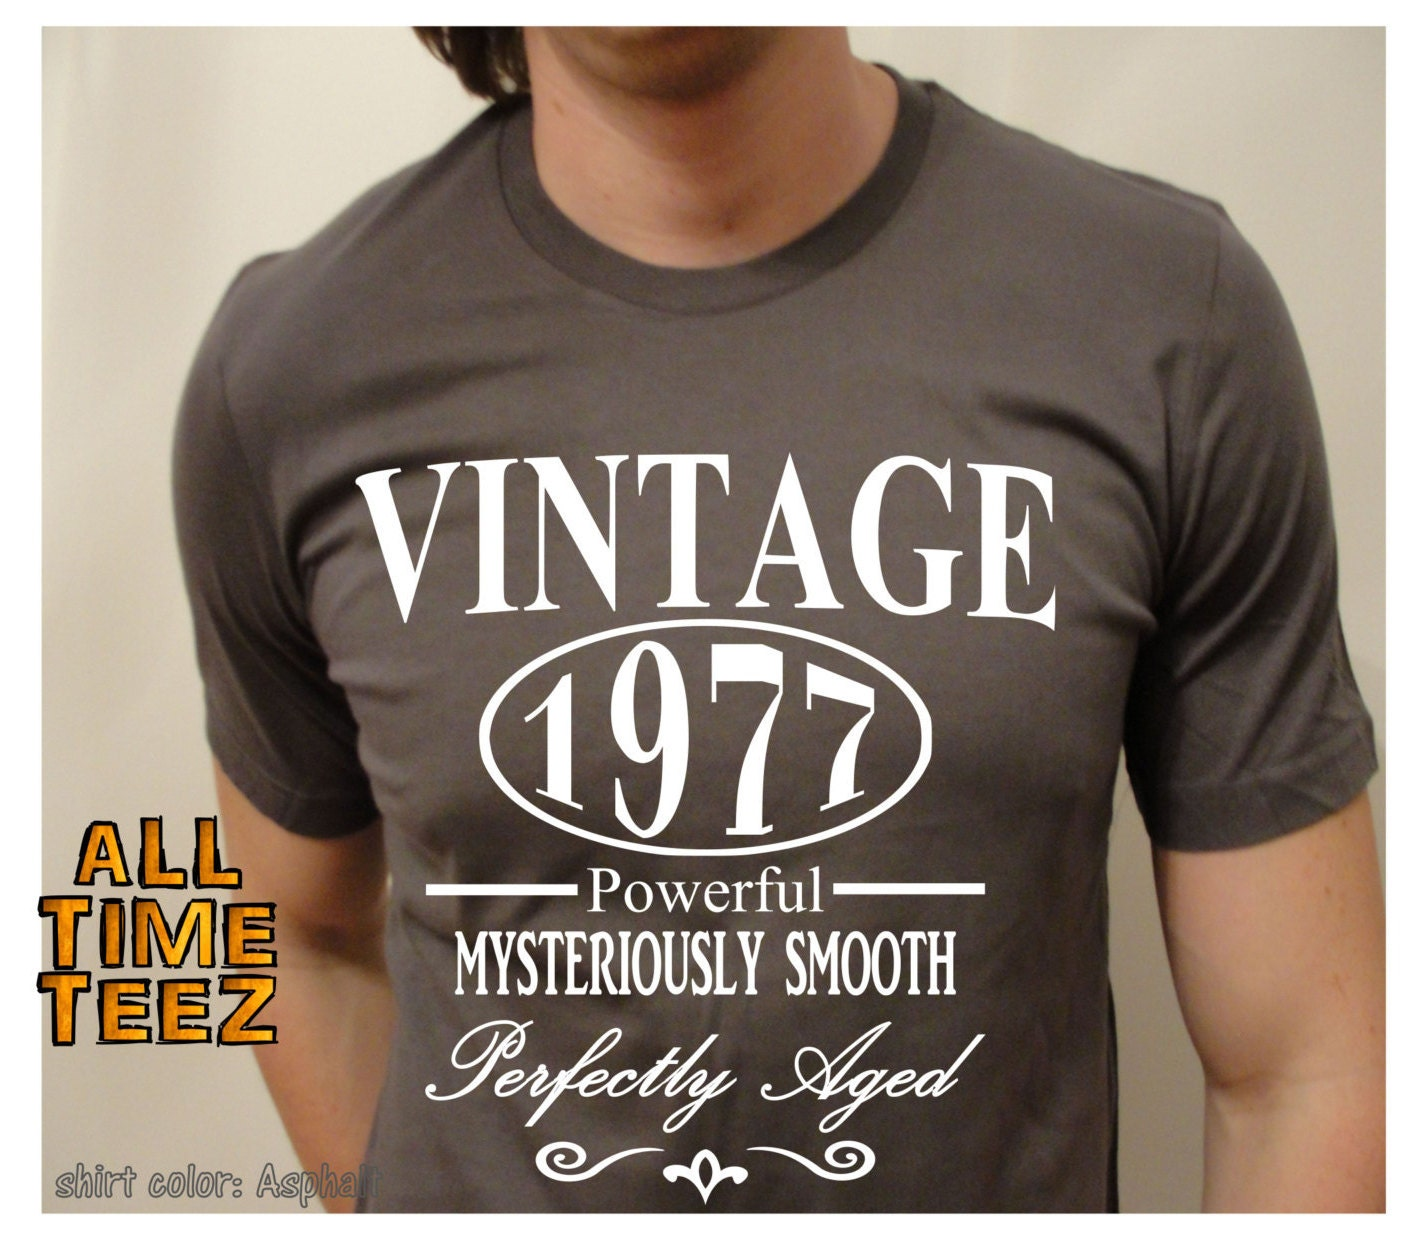 23 Awesome 40th Birthday Gift Ideas For Men: 40th Birthday Gift For Men. Vintage 1977. 40th Birthday